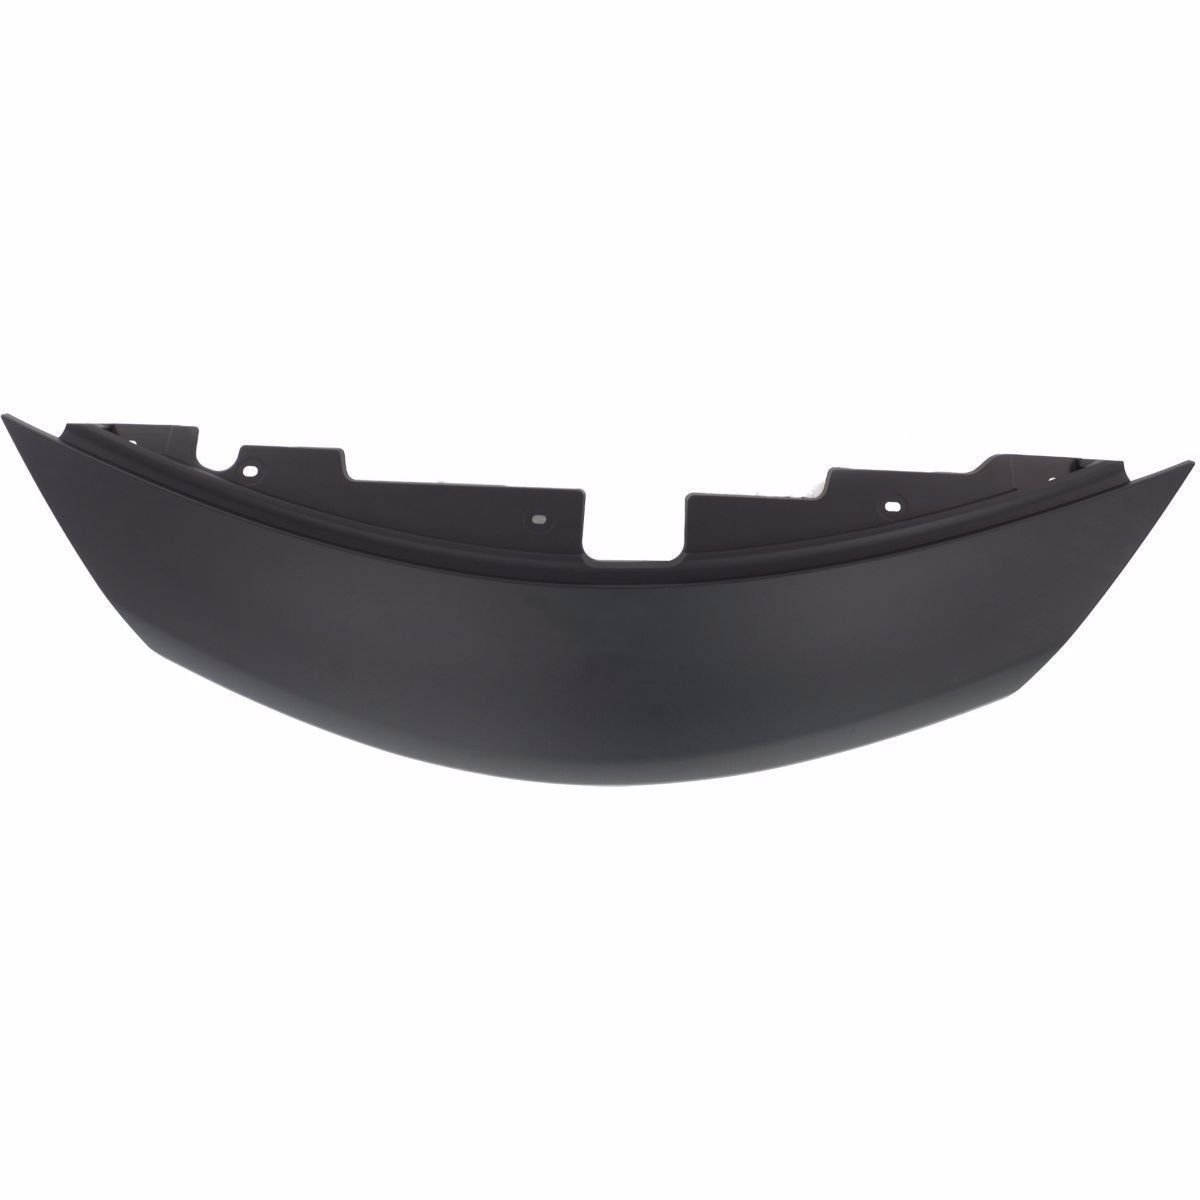 Elite7 Grille Cover Prime Upper Molding Nose Panel Replacement for 14-17 Nissan Versa Note NI1201100